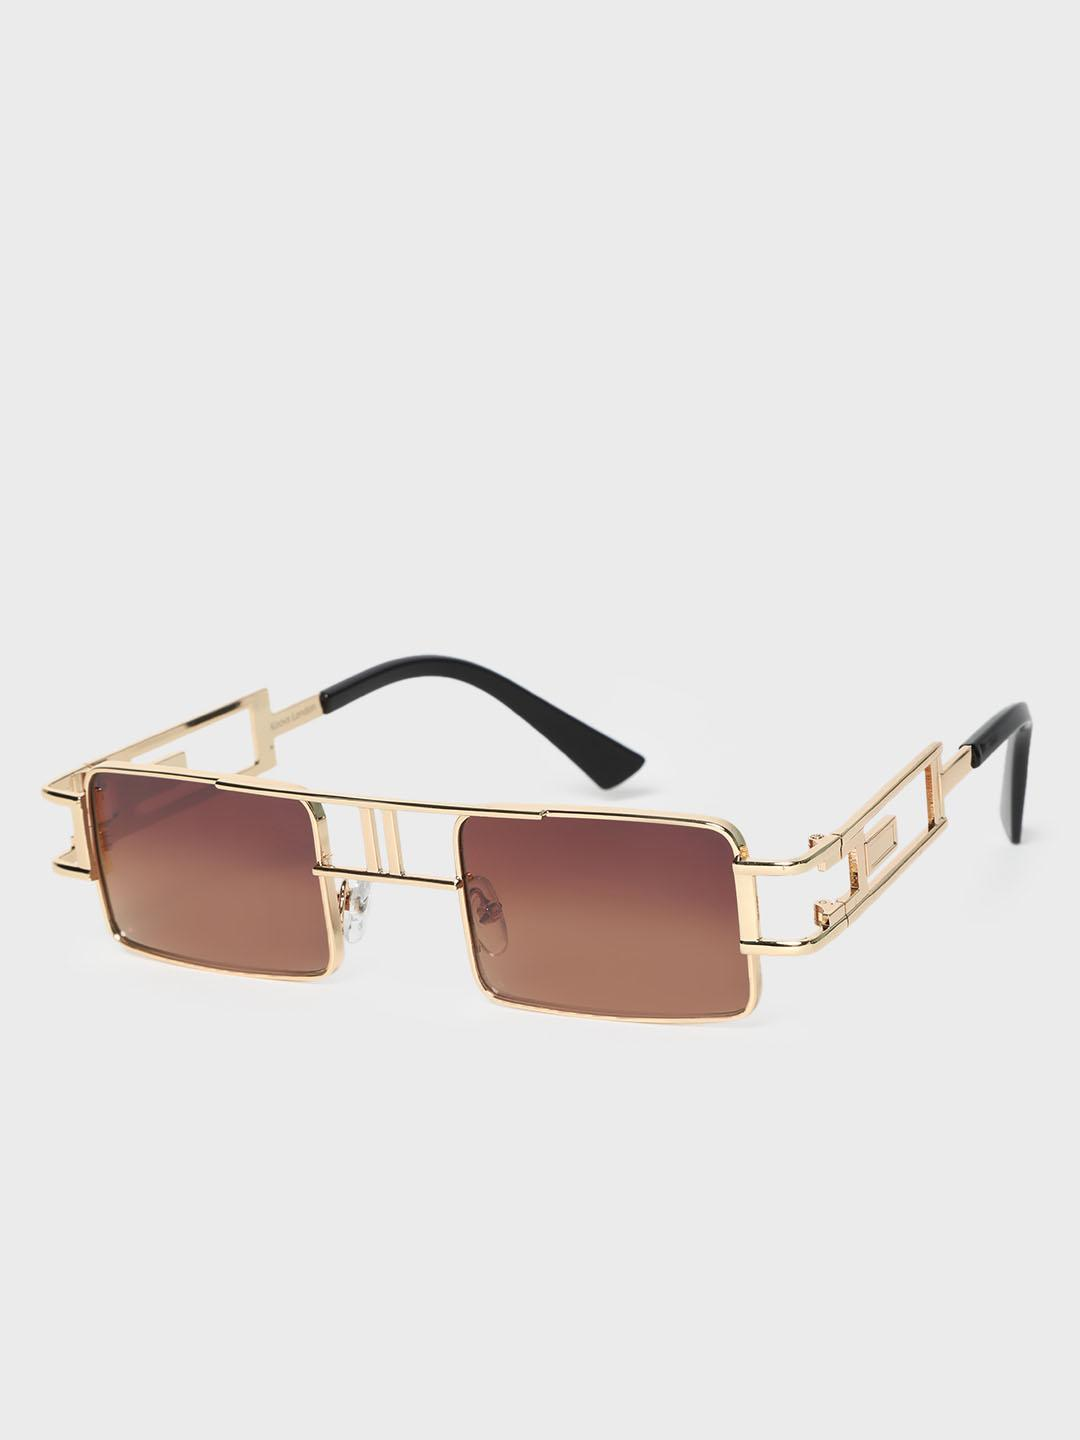 KOOVS Brown Metal Frame Square Sunglasses 1